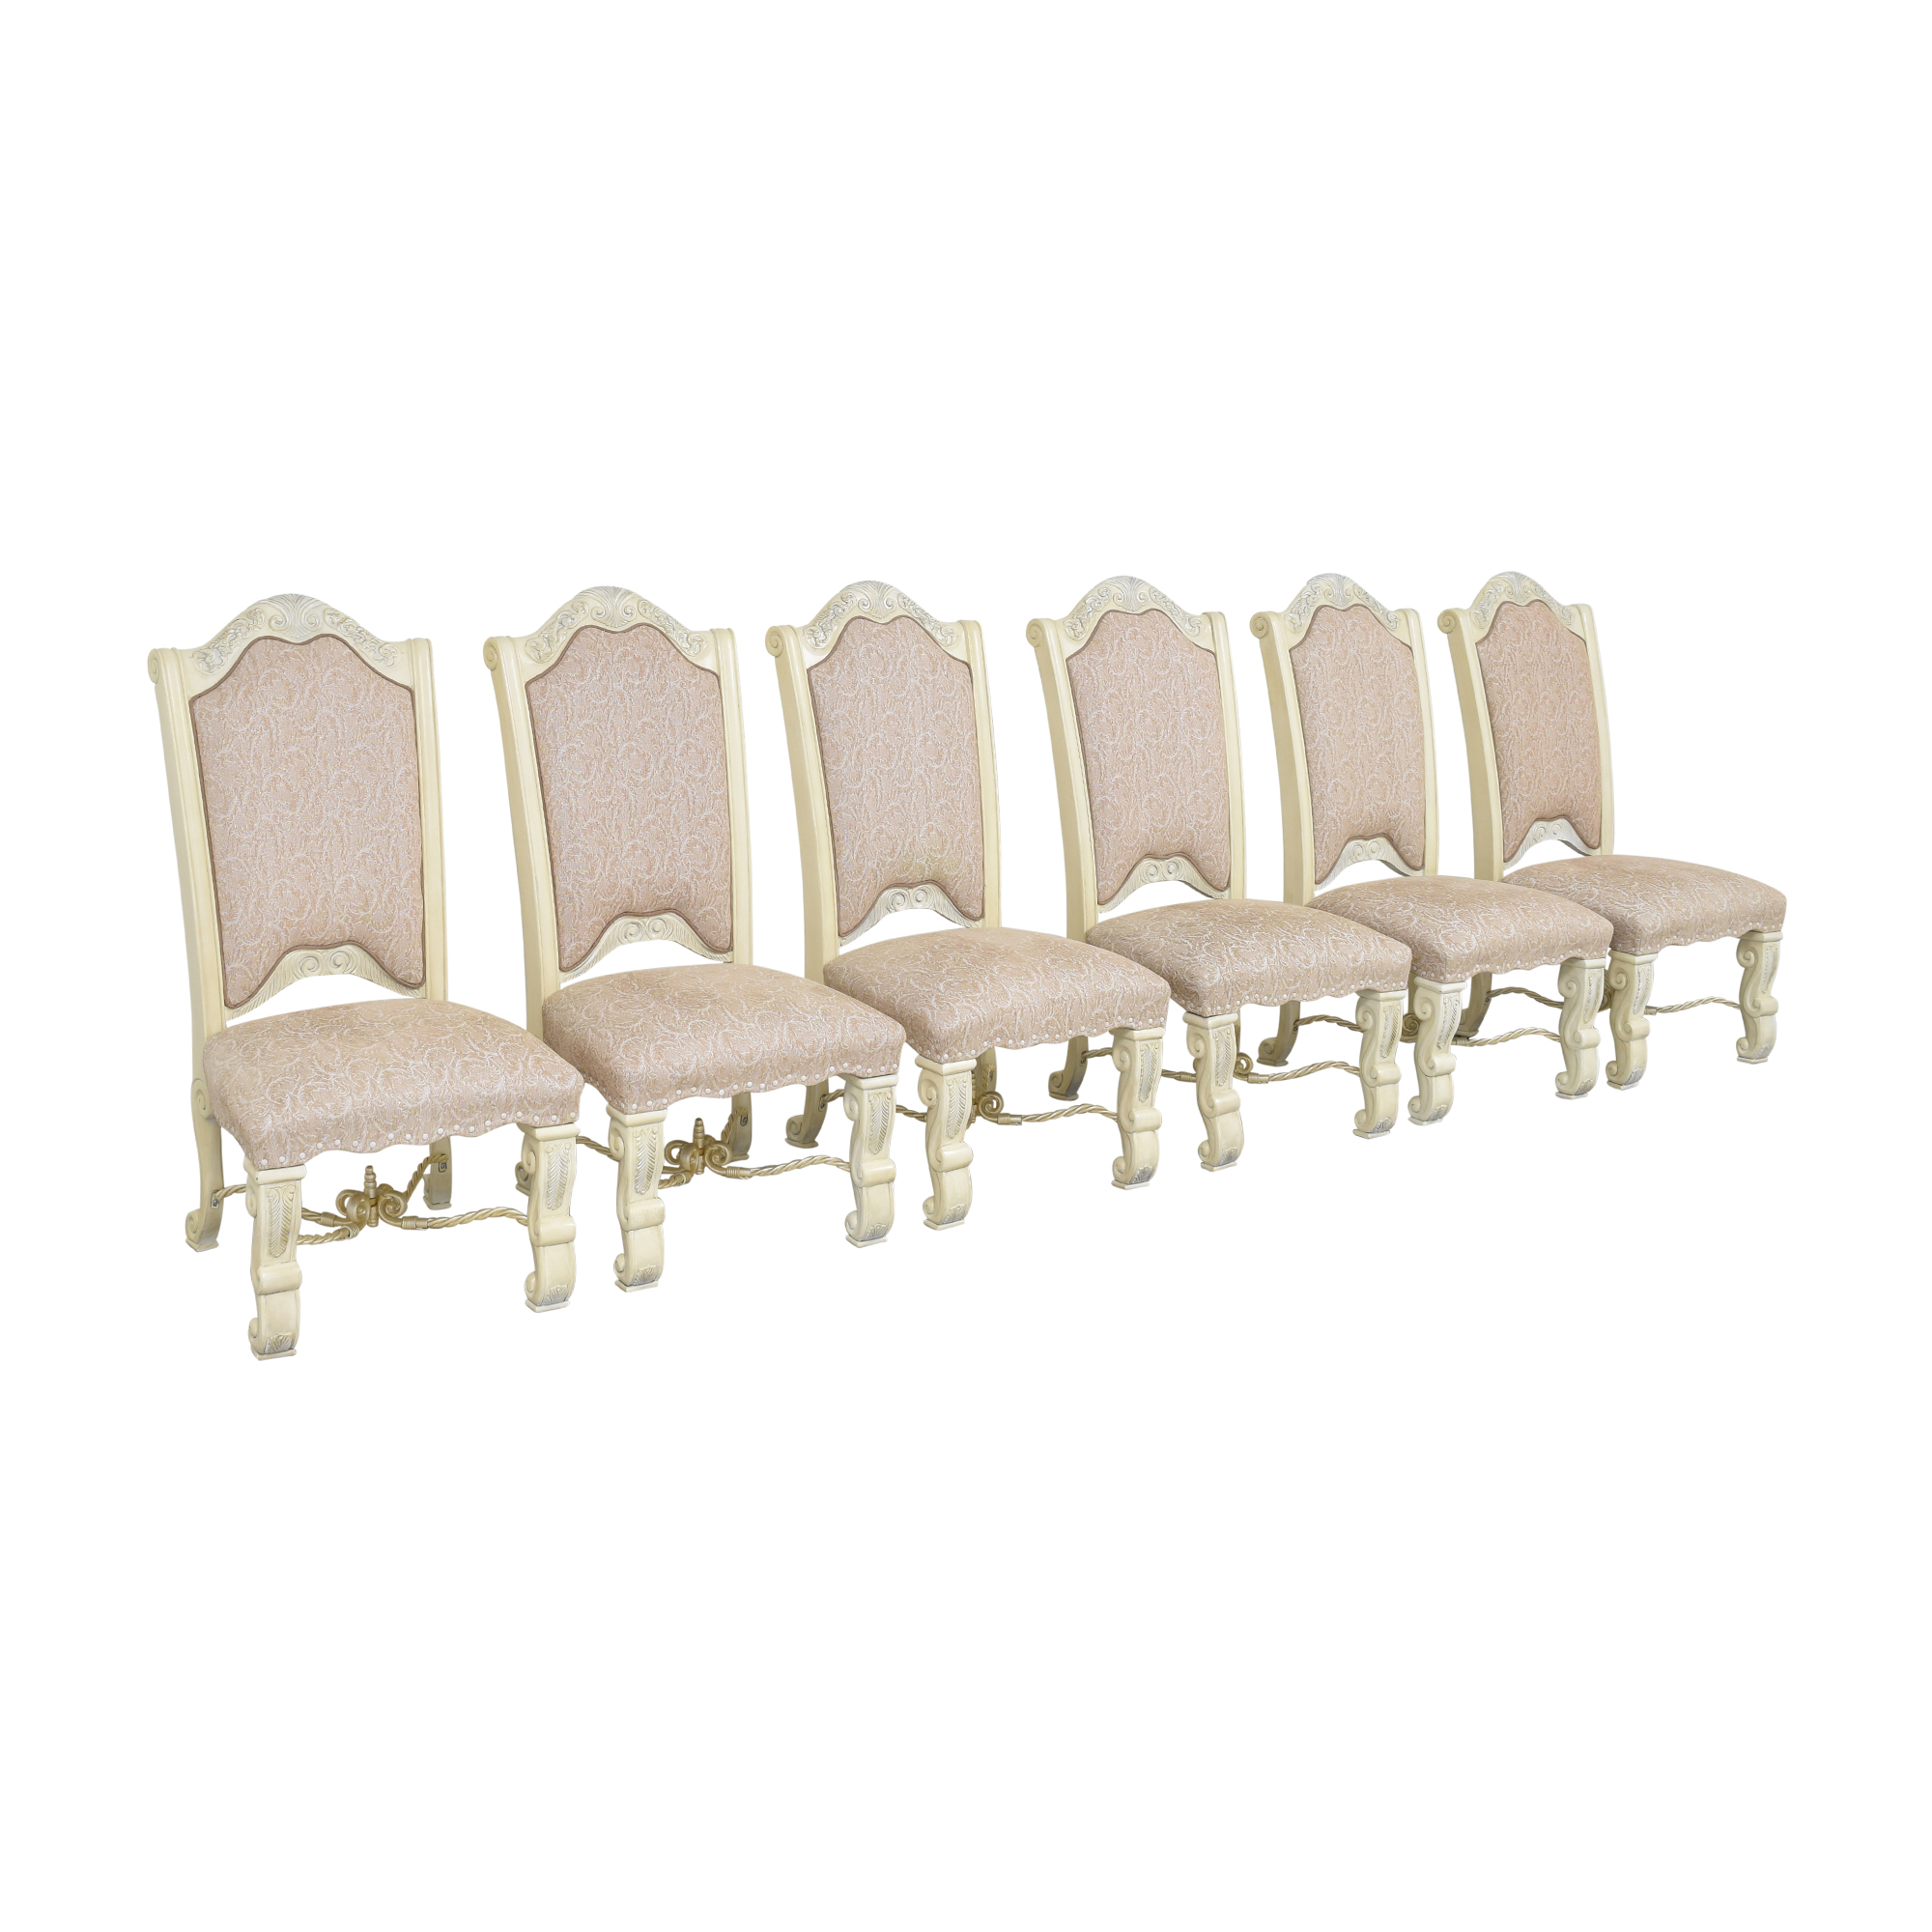 AICO AICO Furniture Monte Carlo Snow Dining Side Chairs beige and cream